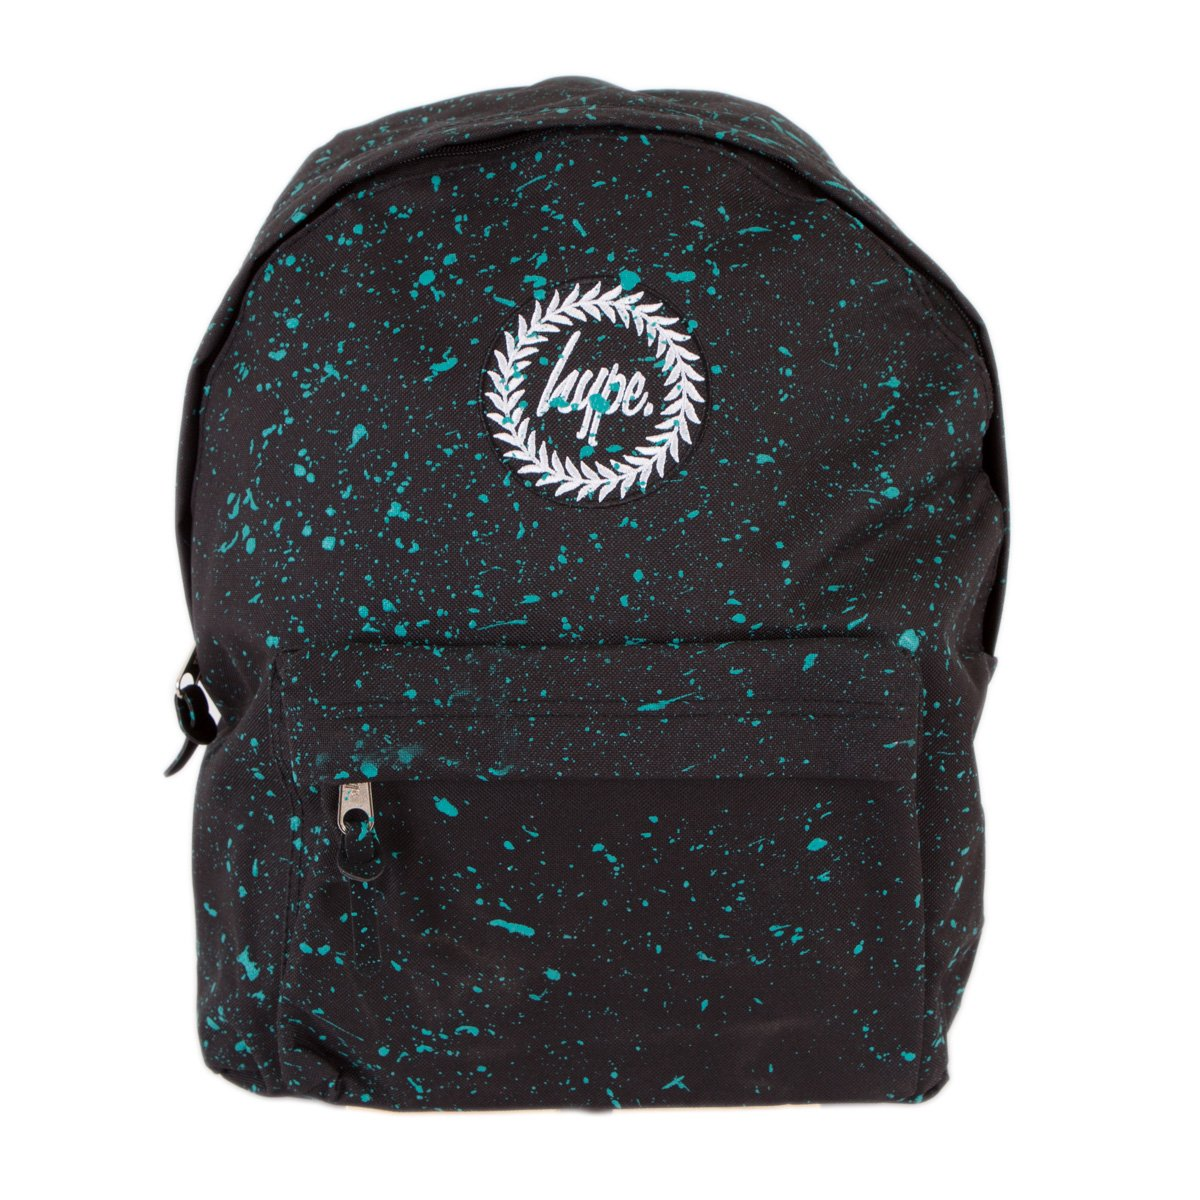 Hype Black Mint Speckle Backpack Rucksack Bag - Ideal School Bags - Rucksack  For Boys and Girls  Amazon.co.uk  Shoes   Bags d8ae612f3f6de